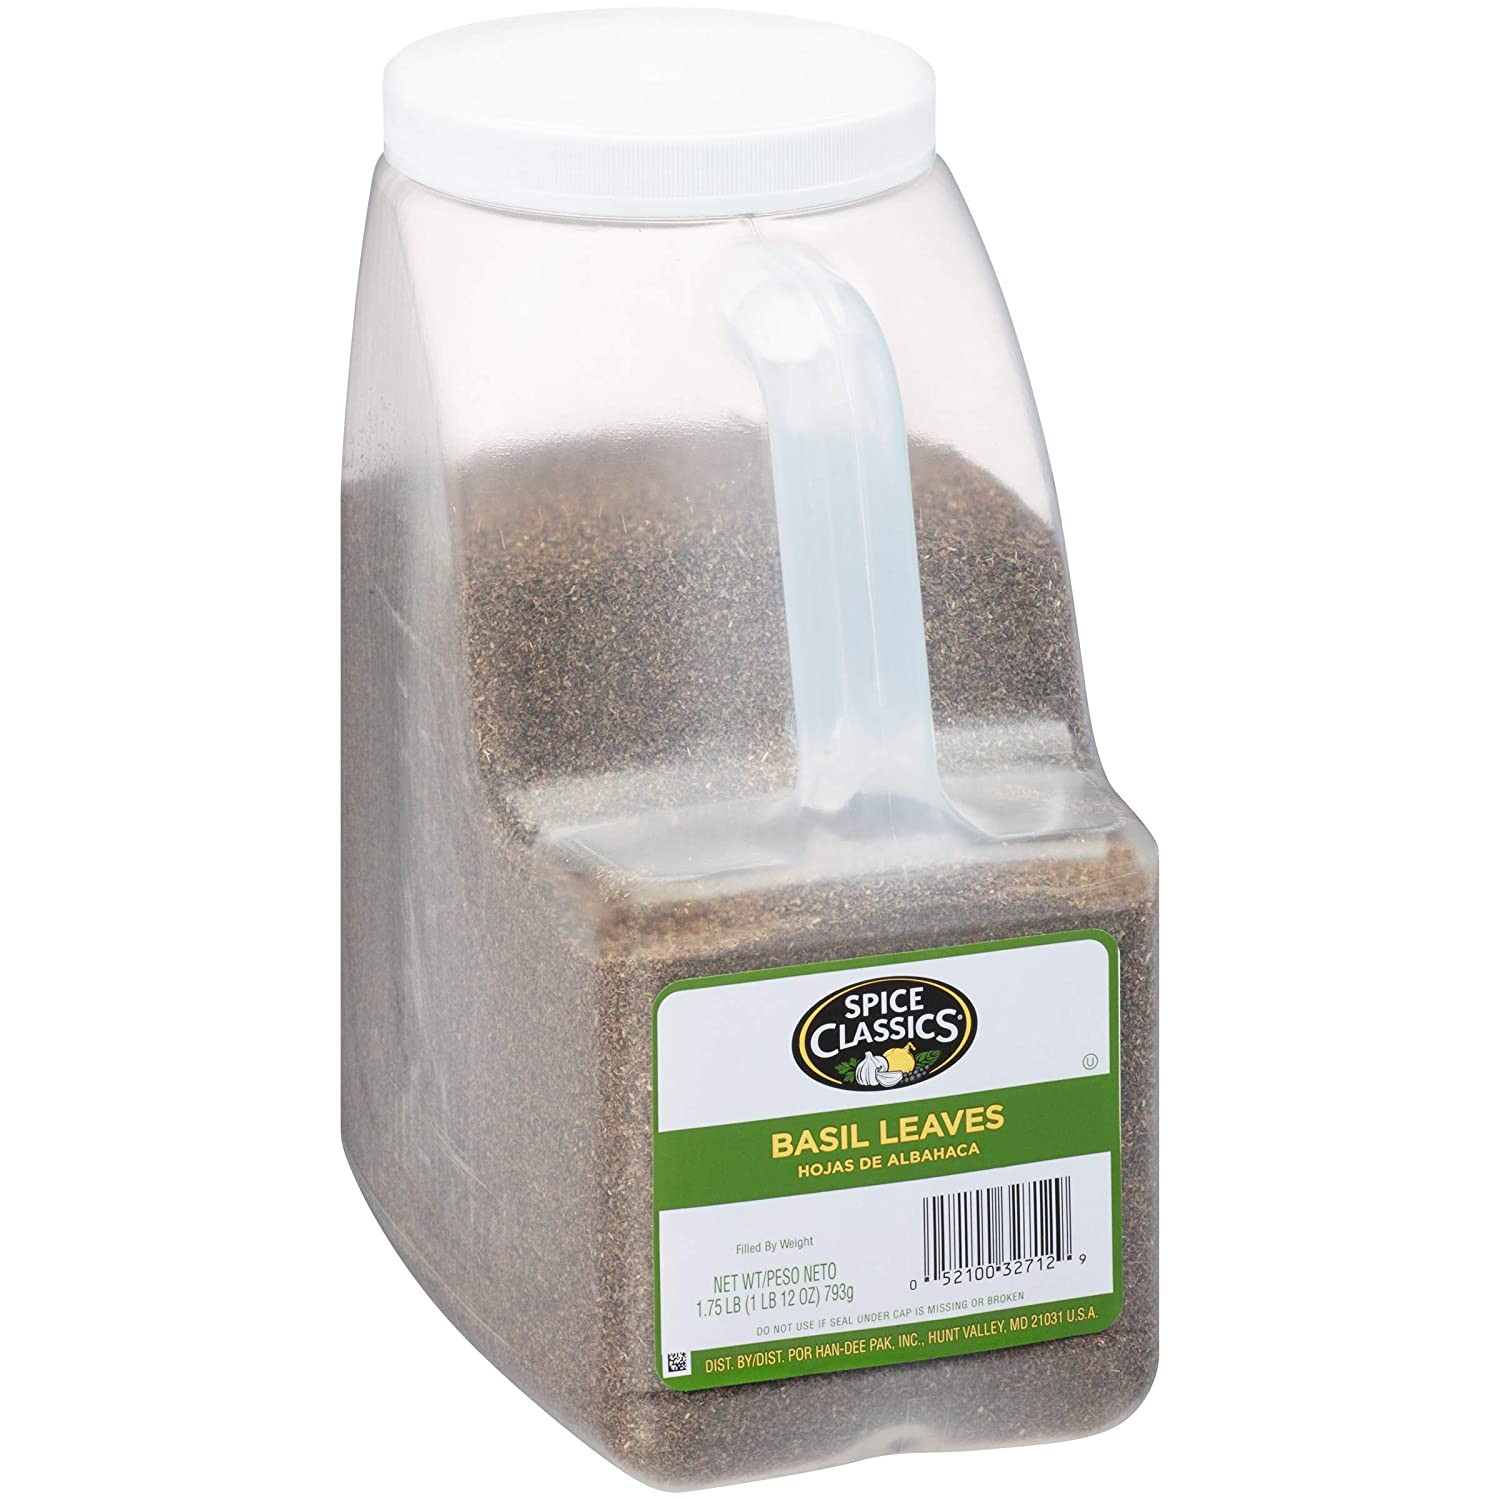 Max 70% OFF Spice Classics Basil Directly managed store Leaves lbs 1.75